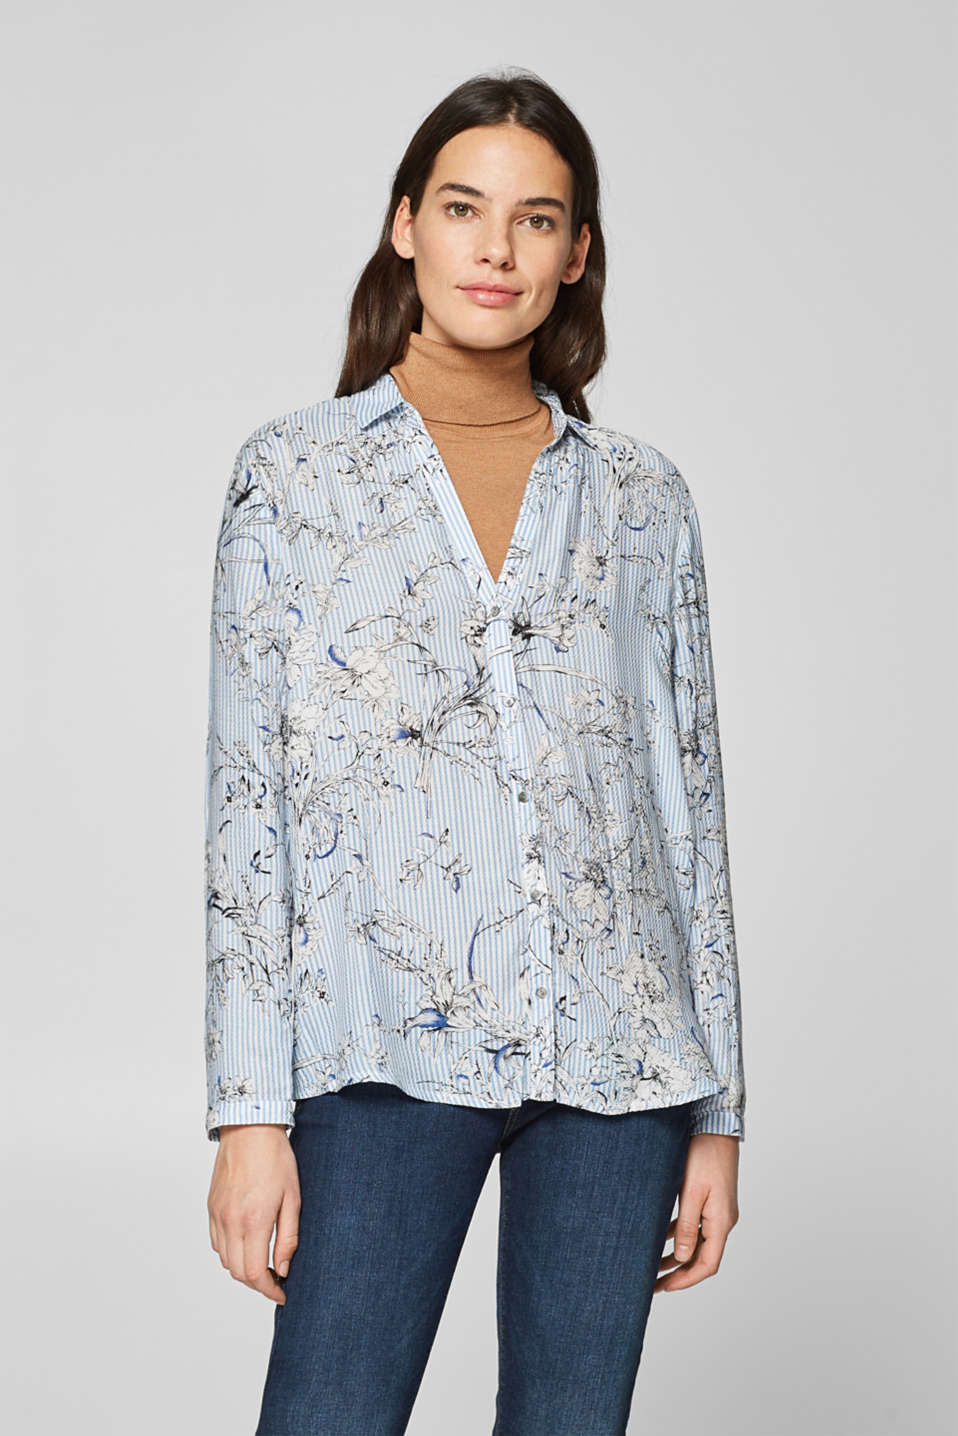 Esprit - Shirt blouse with print and open collar